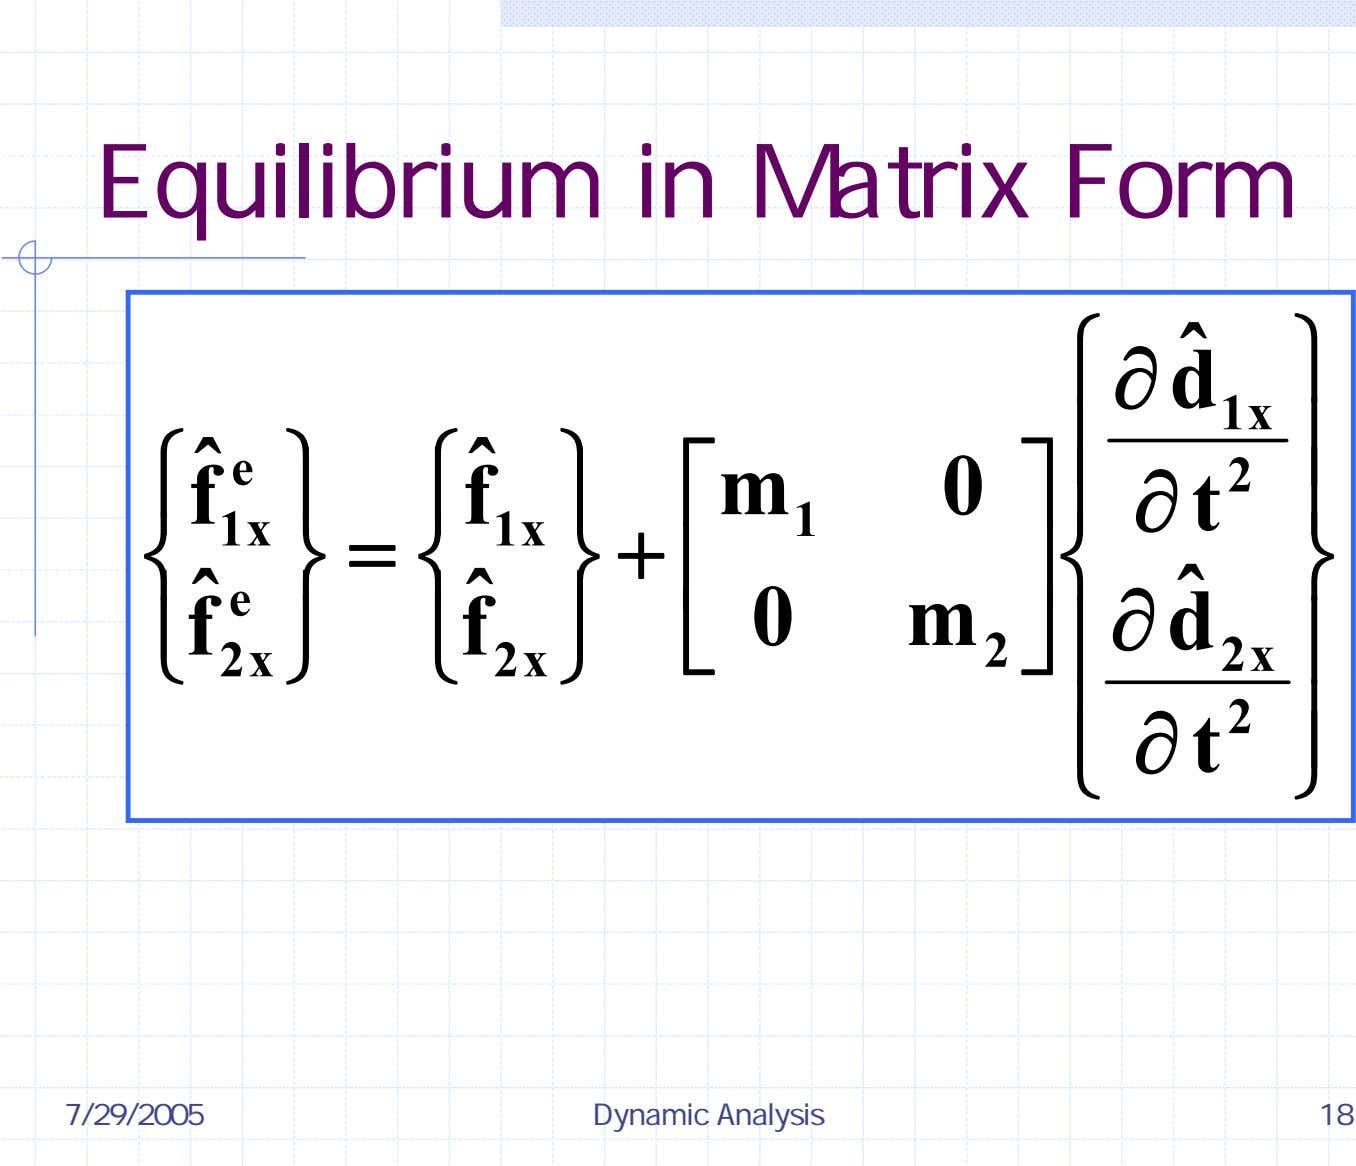 Equilibrium in Matrix Form ⎧ ˆ ∂ d ⎫ 1x ⎪ ⎪ ⎧ ˆ e